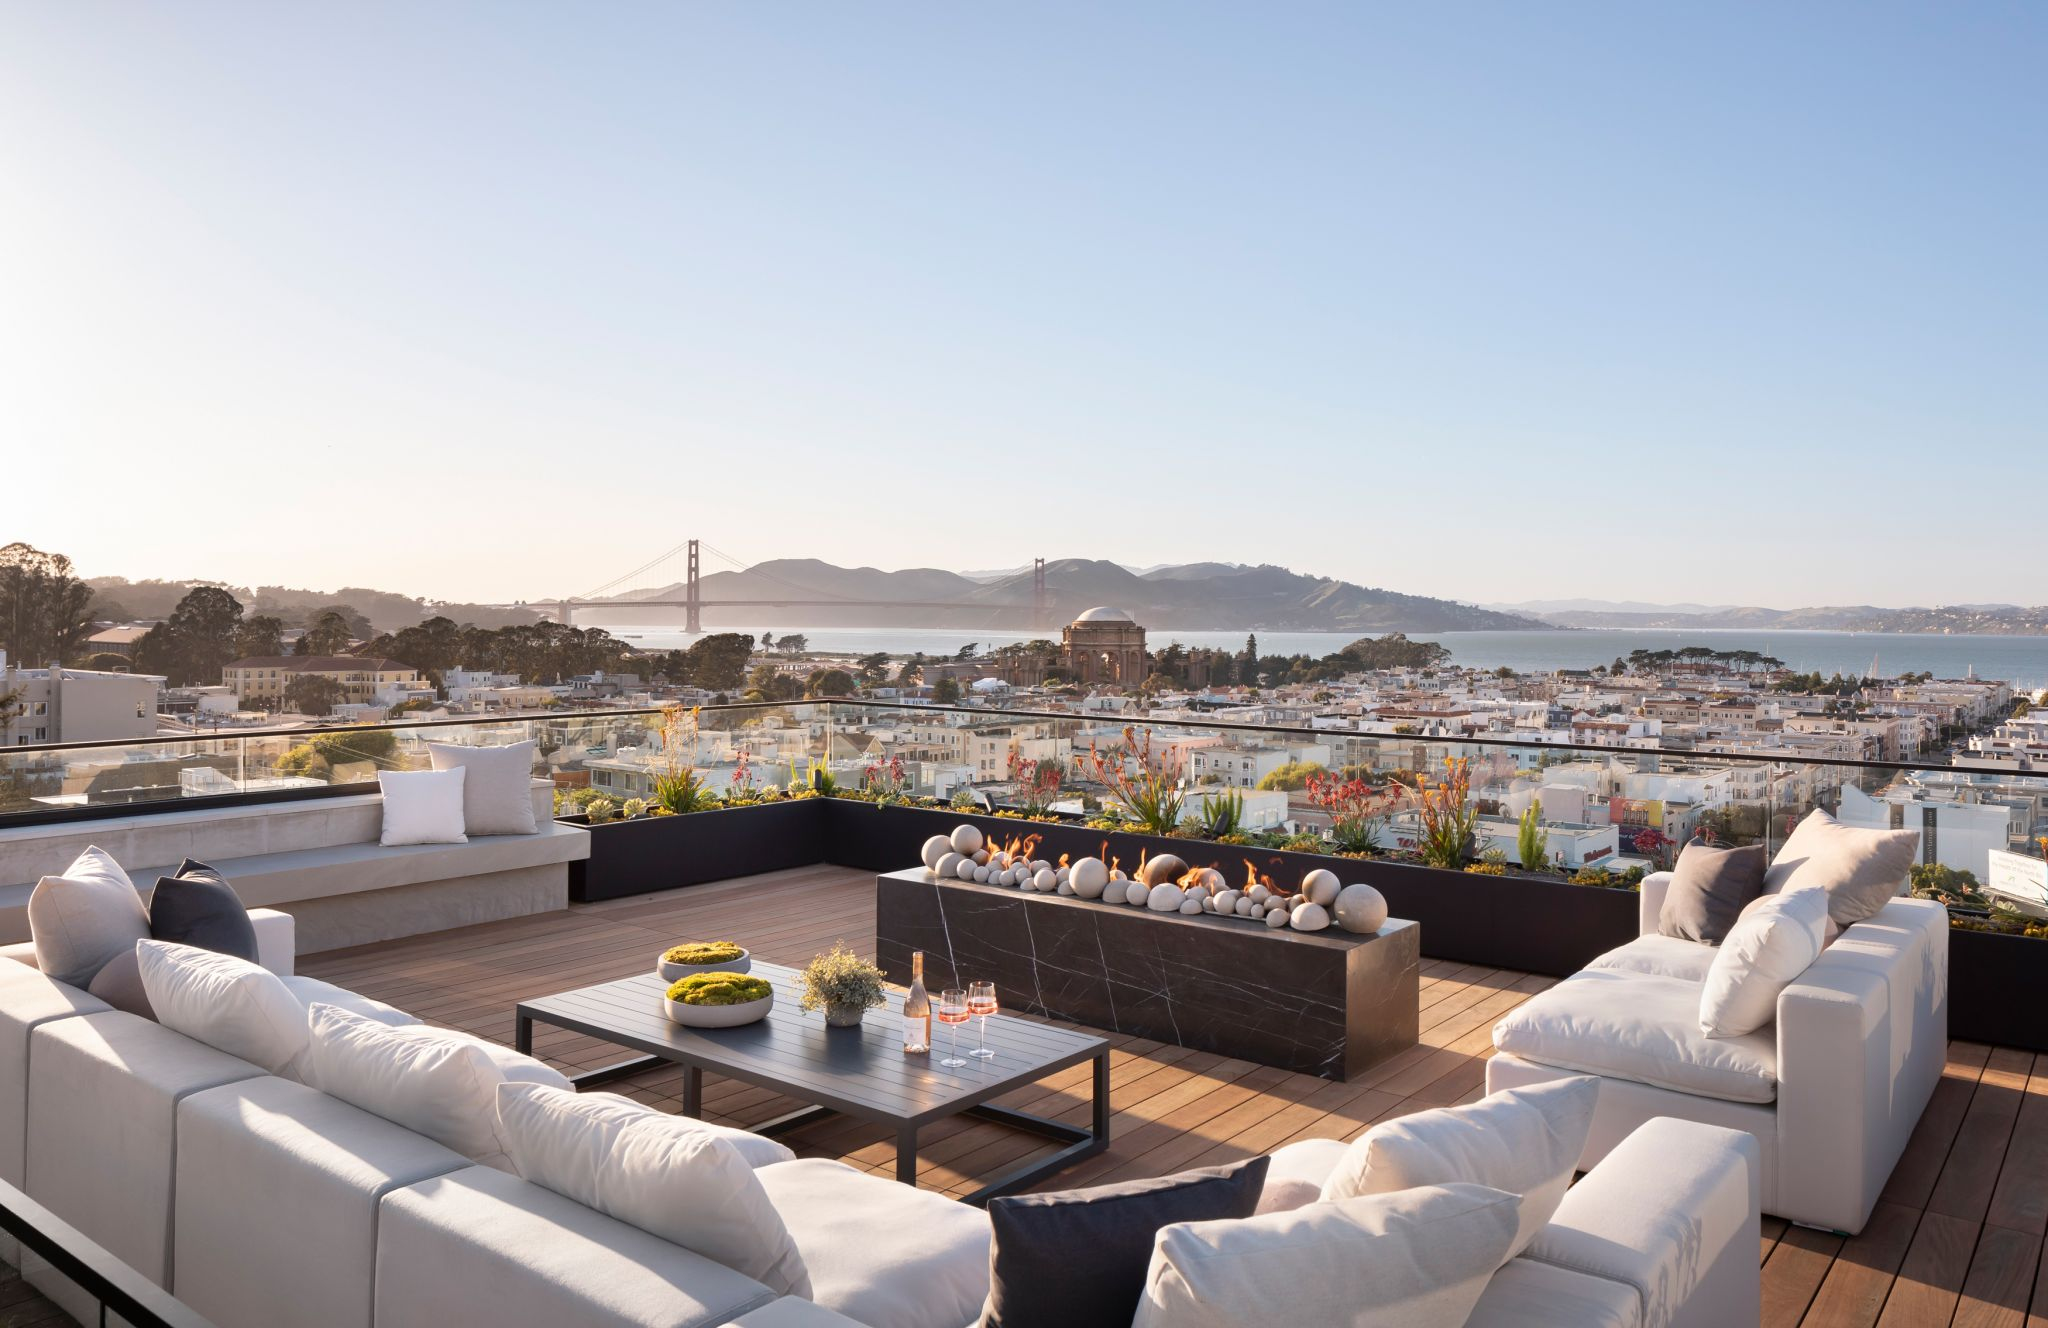 The roof deck offers a stunning view of the city and bay beyond.